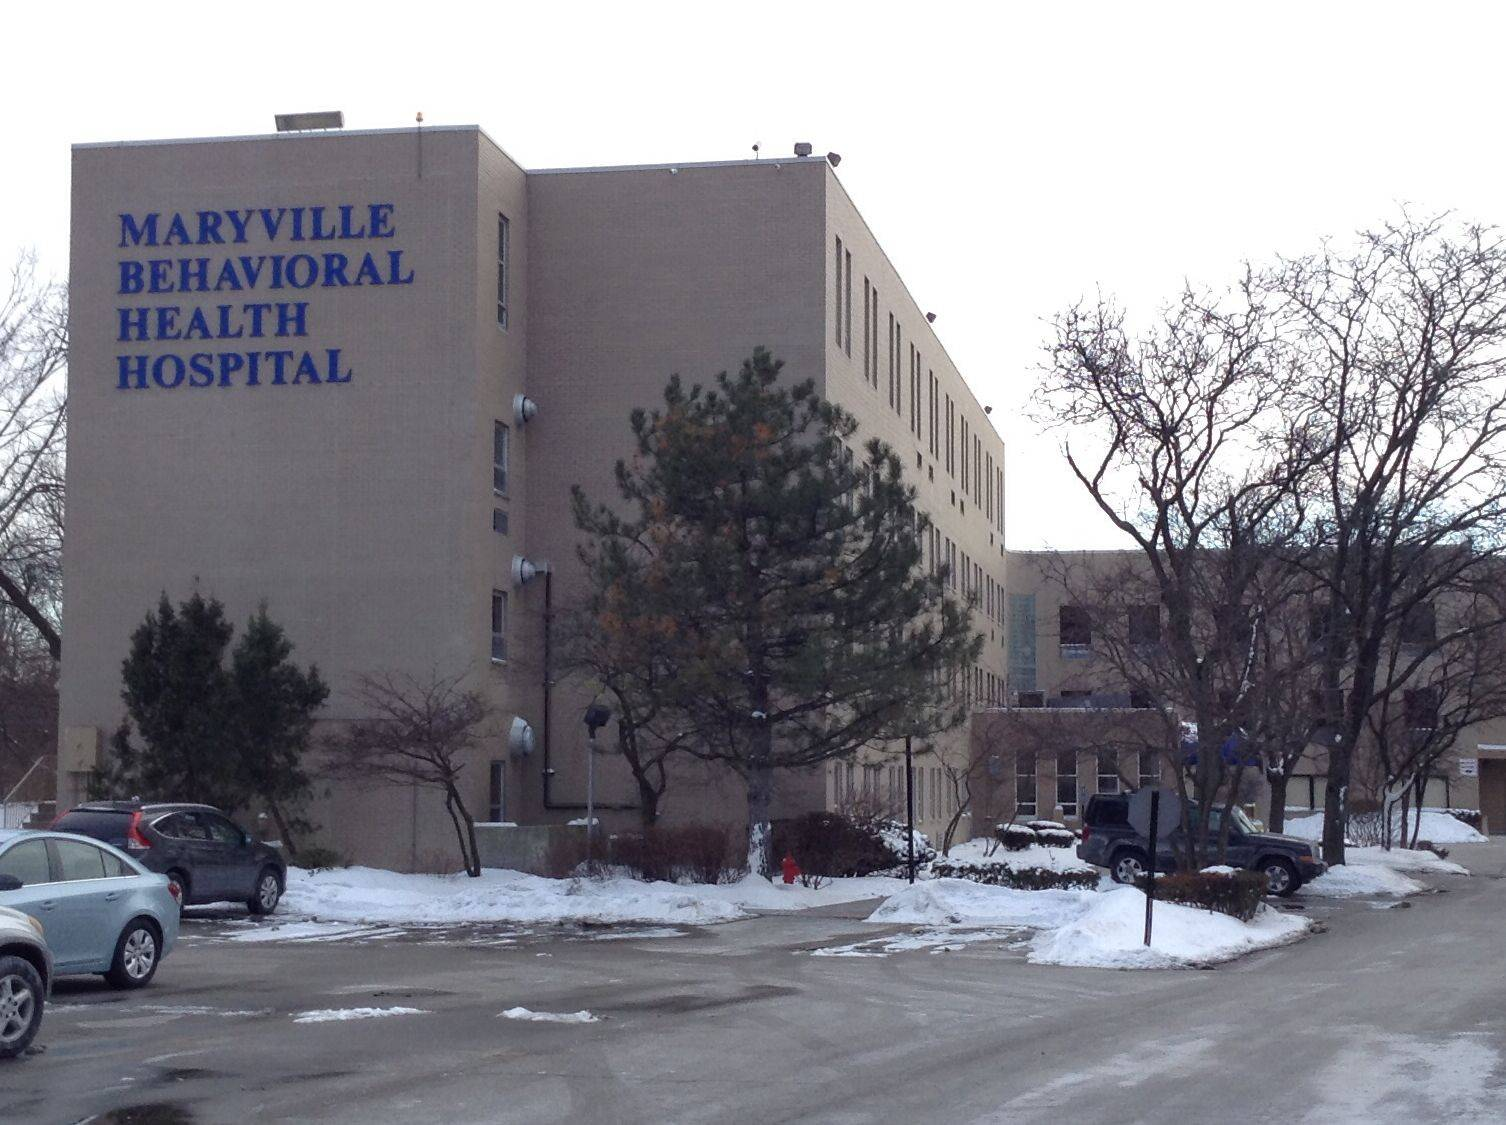 Nurses at Maryville Behavioral Health Hospital in Des Plaines could go on strike as early as Monday if their union and representatives of the facility are unable to come to terms on a labor contract. Their two main points of contention are salaries and staffing levels.